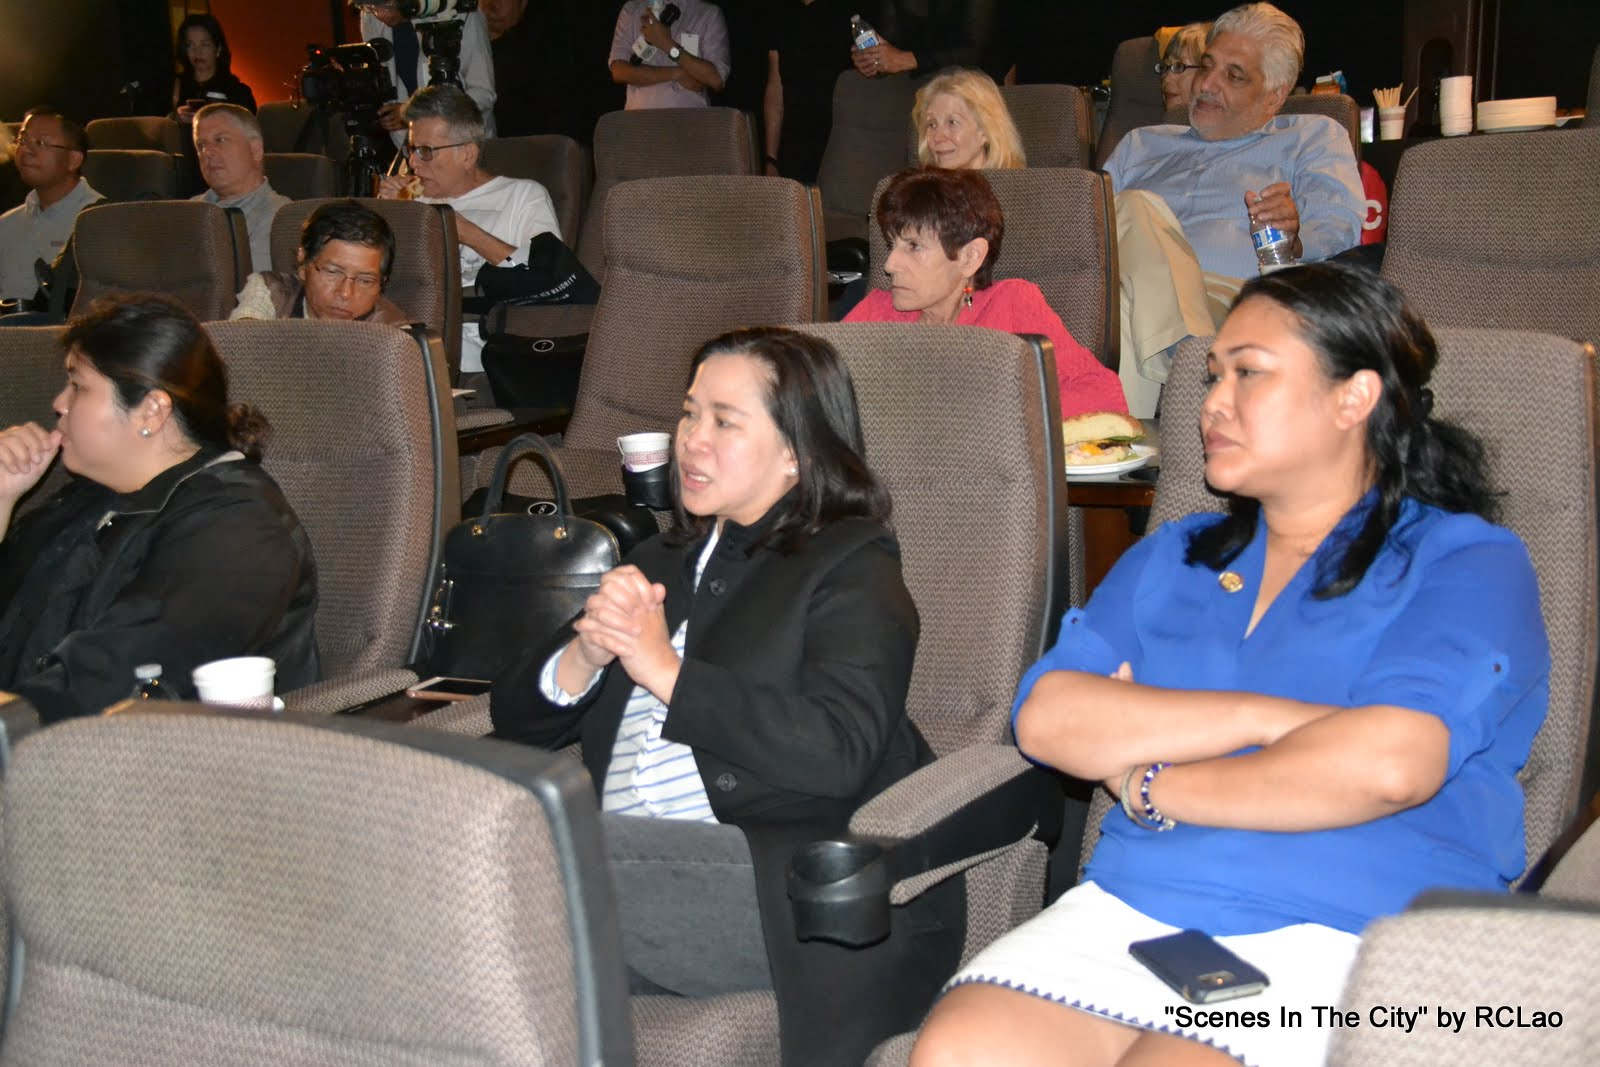 (Front L-R) Consul Carlyn Monastrial of the Philippine Consulate in San Francisco; ABS-CBN International Managing Director for North America Olivia De Jesus; Chief of Staff at CA State Board of Equalization Genevieve Jopanda; and representatives from various media and publications at the special screening of Mikhail Red's Bird Shot, shown at the Cinamatografo International Film Festival launch and press conference at the AMC Dine-In Kabuki 8 Theaters in Japantown. (Photo courtesy of Richard Lao)